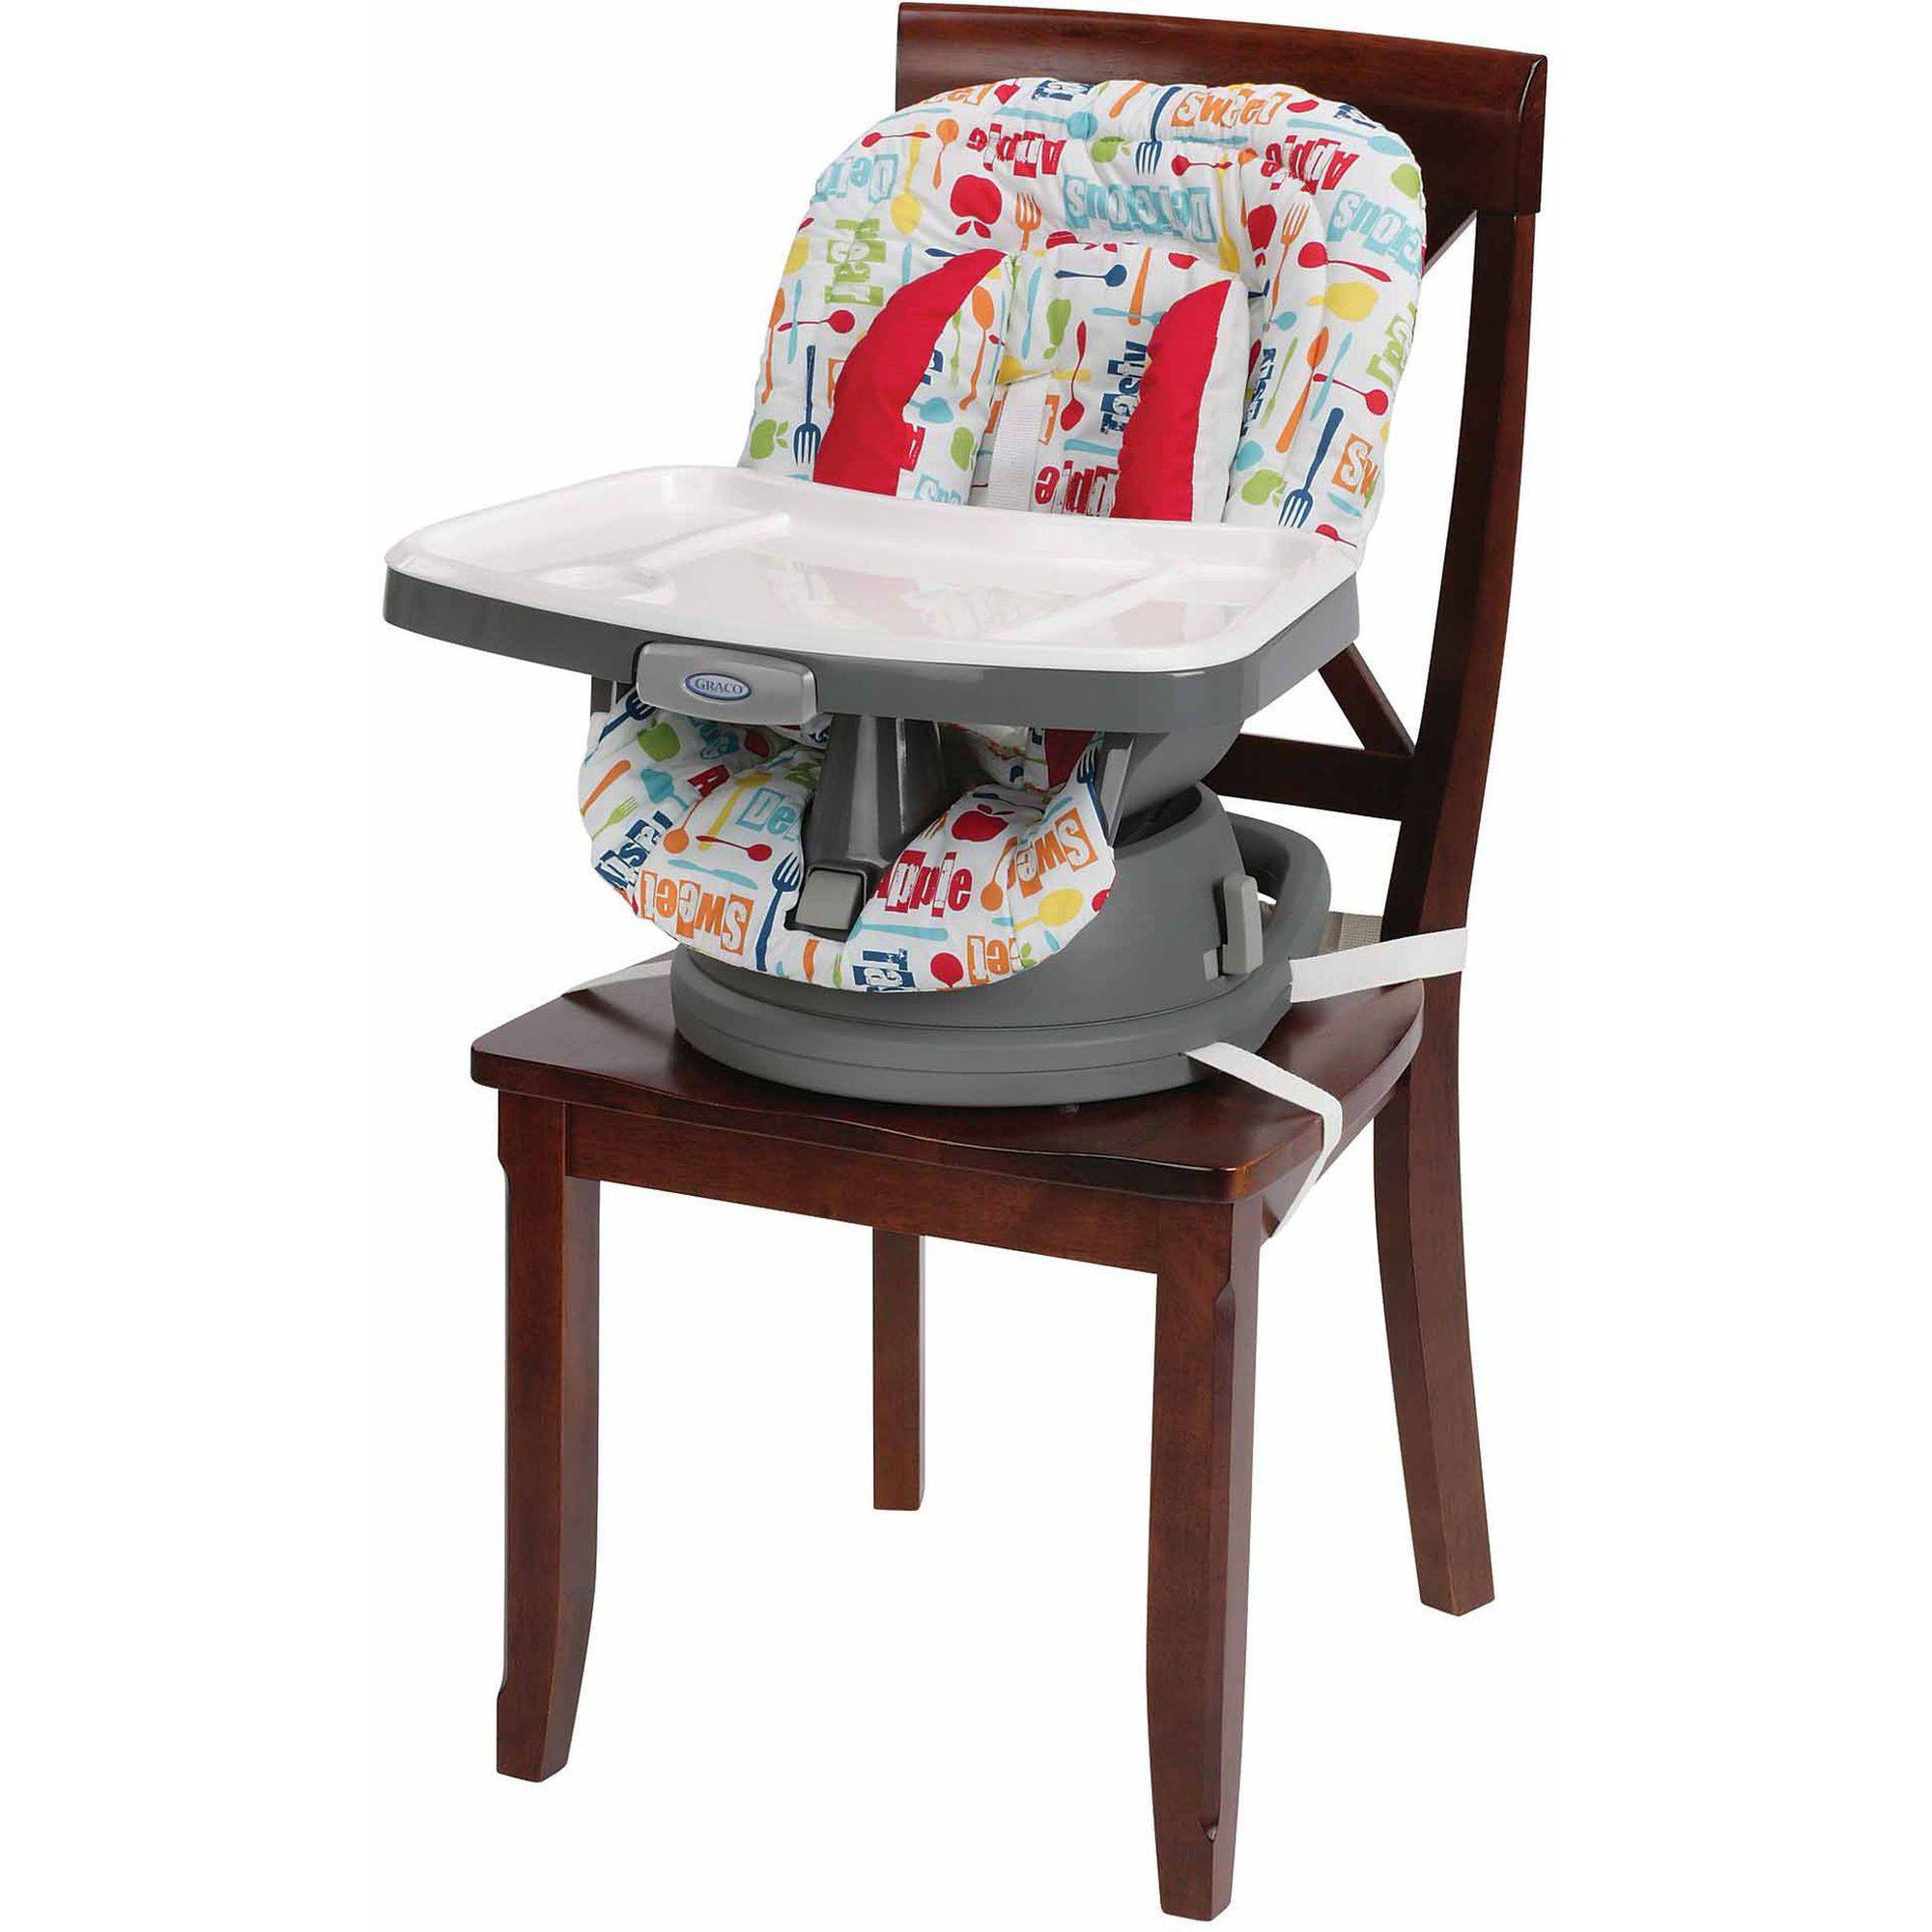 Svan Lyft High Chair Booster Seat Adjusts Easily to Most Chairs White Booster Seat 18 Mo to 5 Yrs